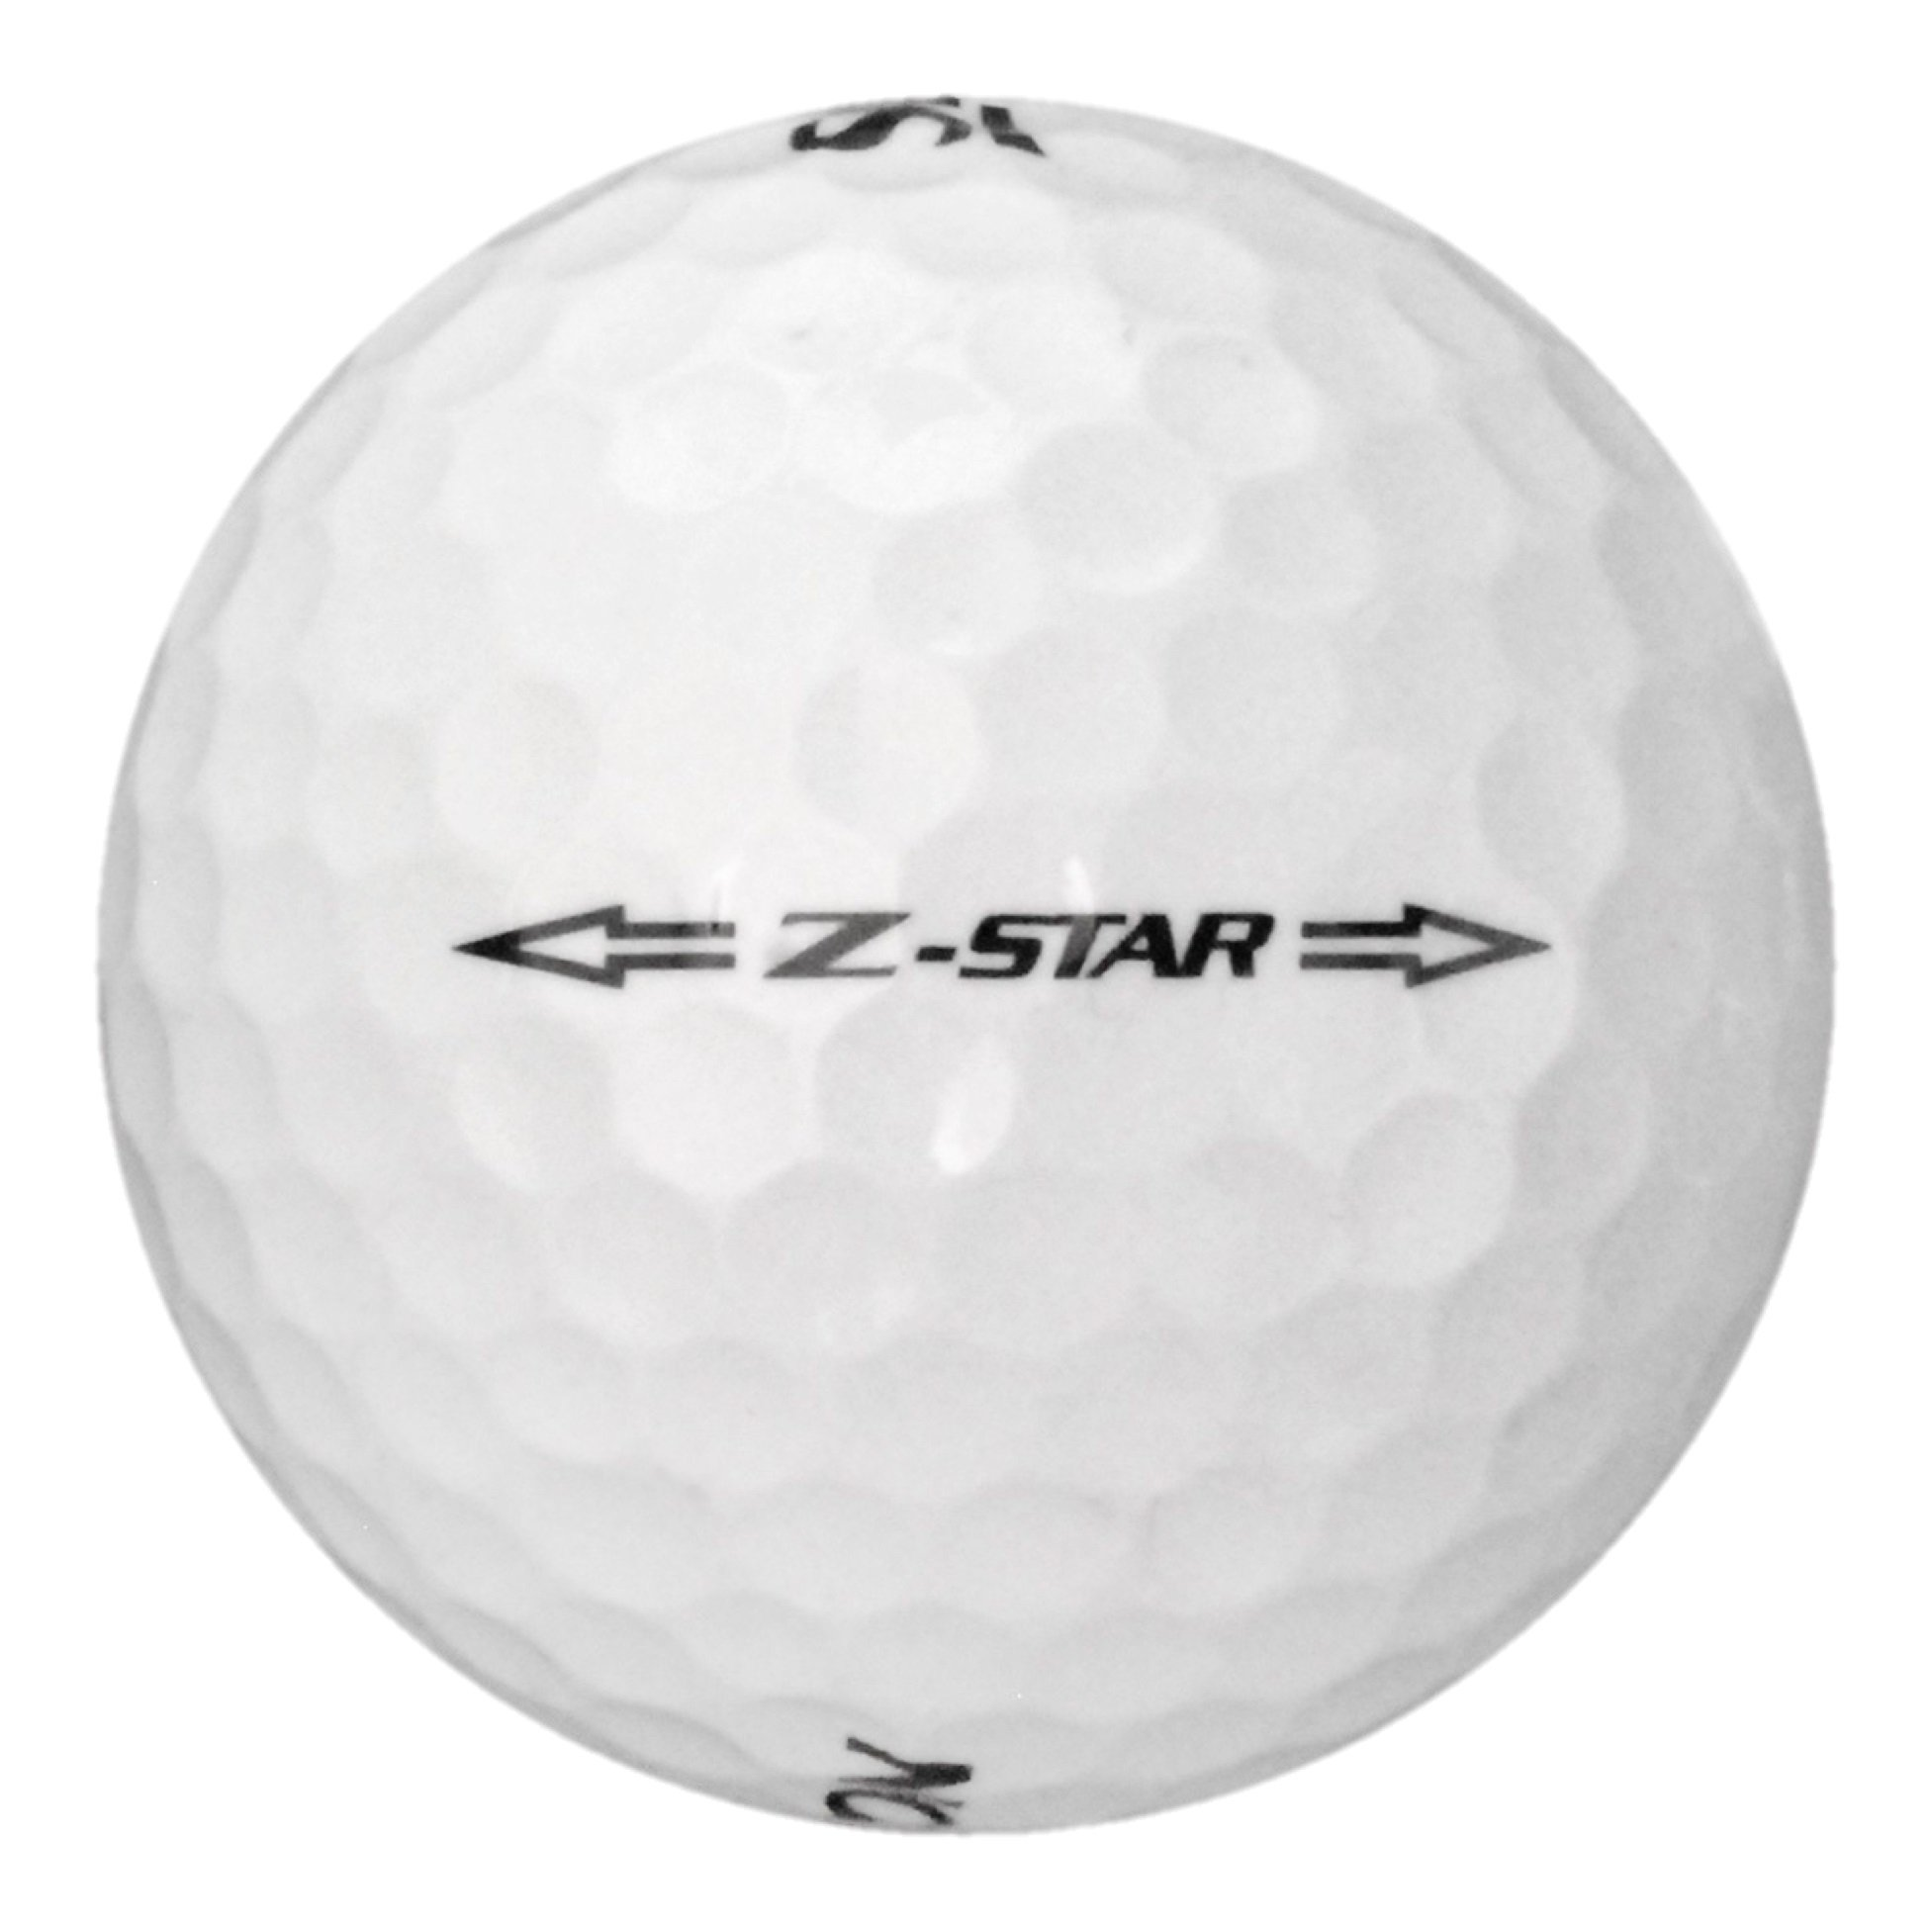 132 Srixon Z-Star - Value (AAA) Grade - Recycled (Used) Golf Balls